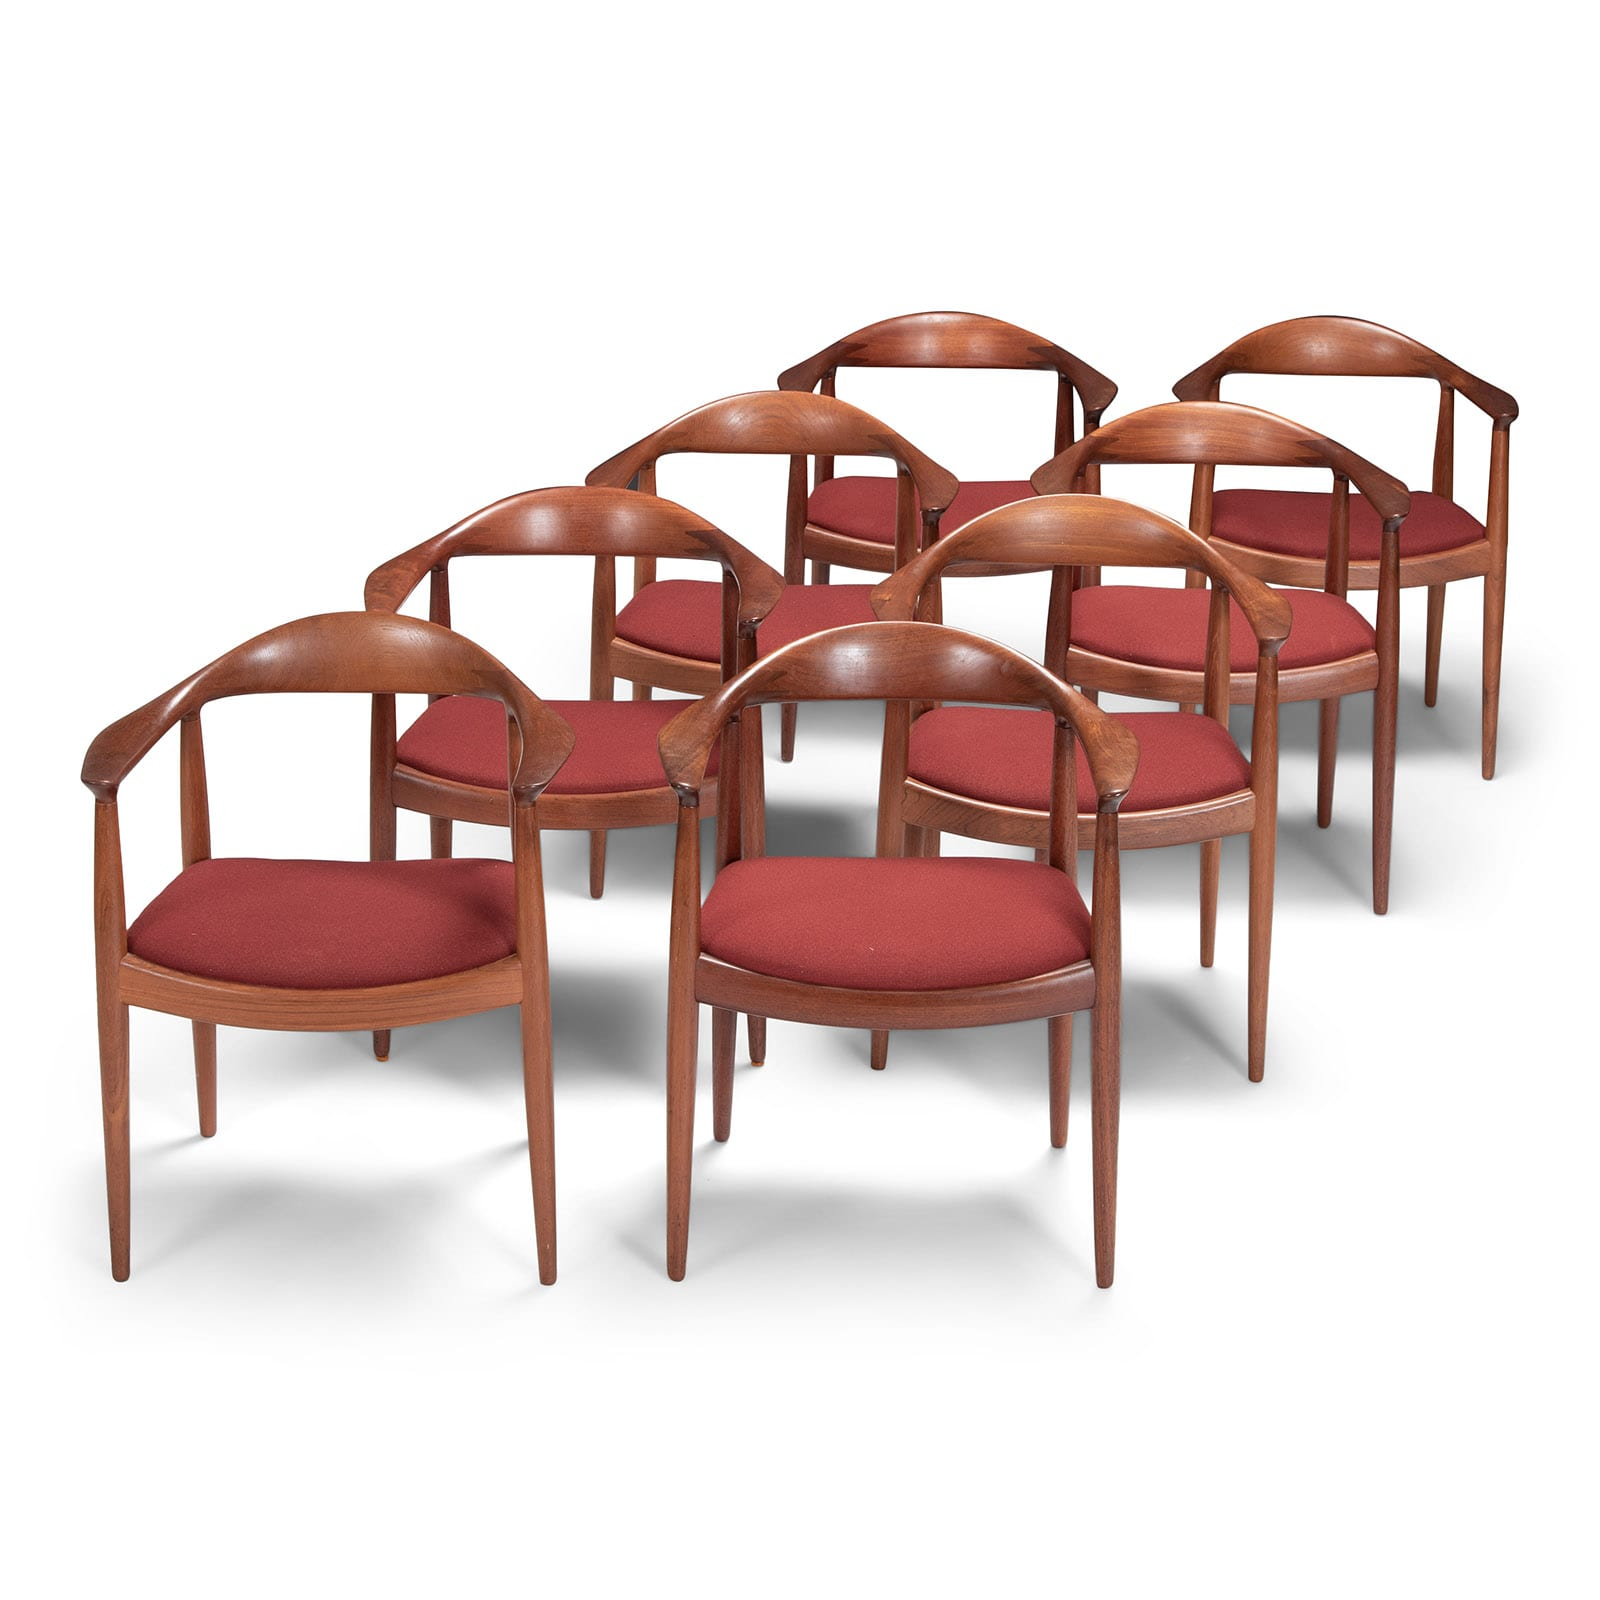 A Set of eight 'The Chairs'